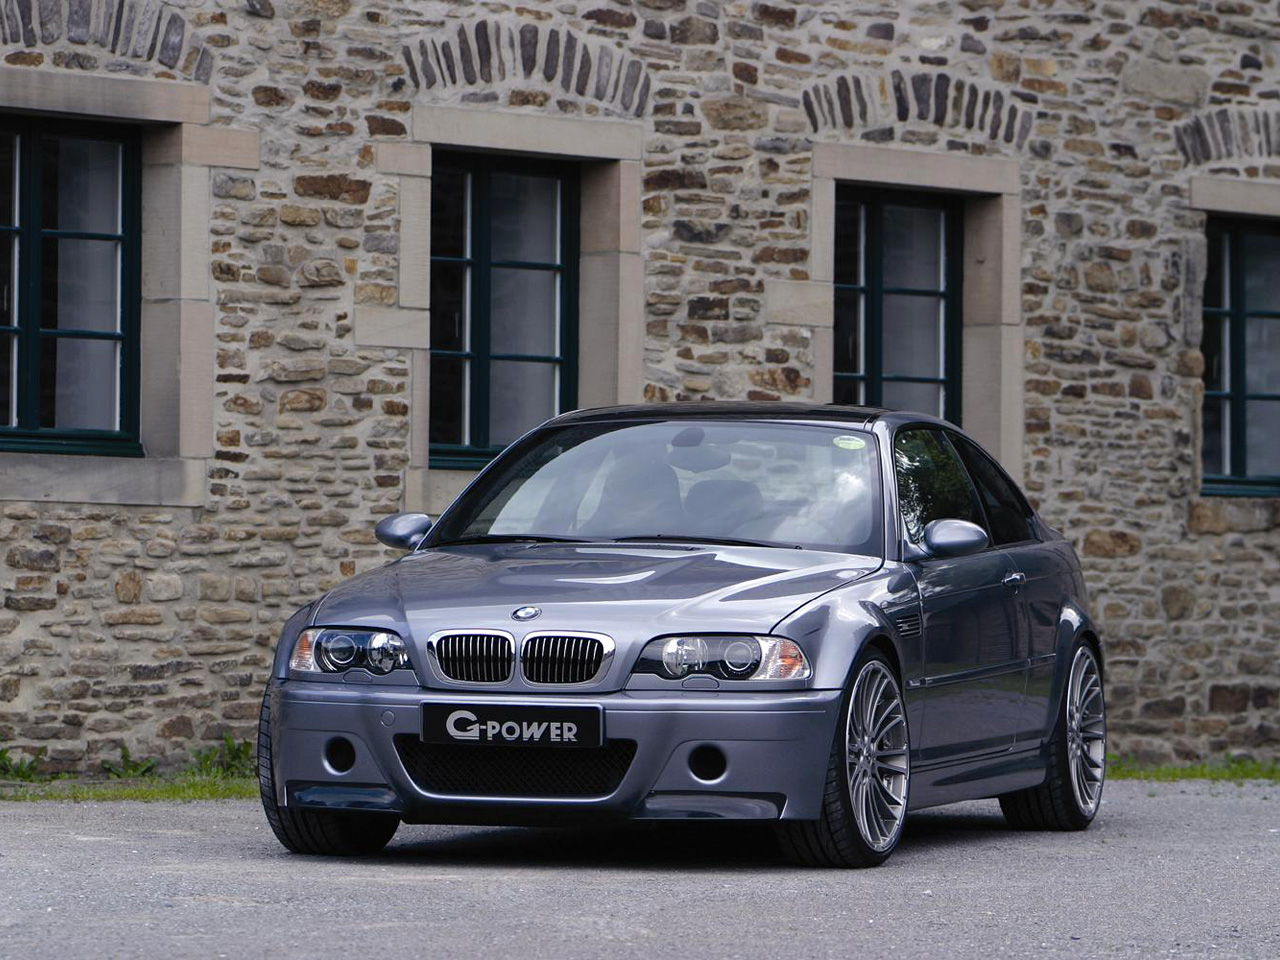 Bmw m3 convertible 2008 - car picture at dieselstation